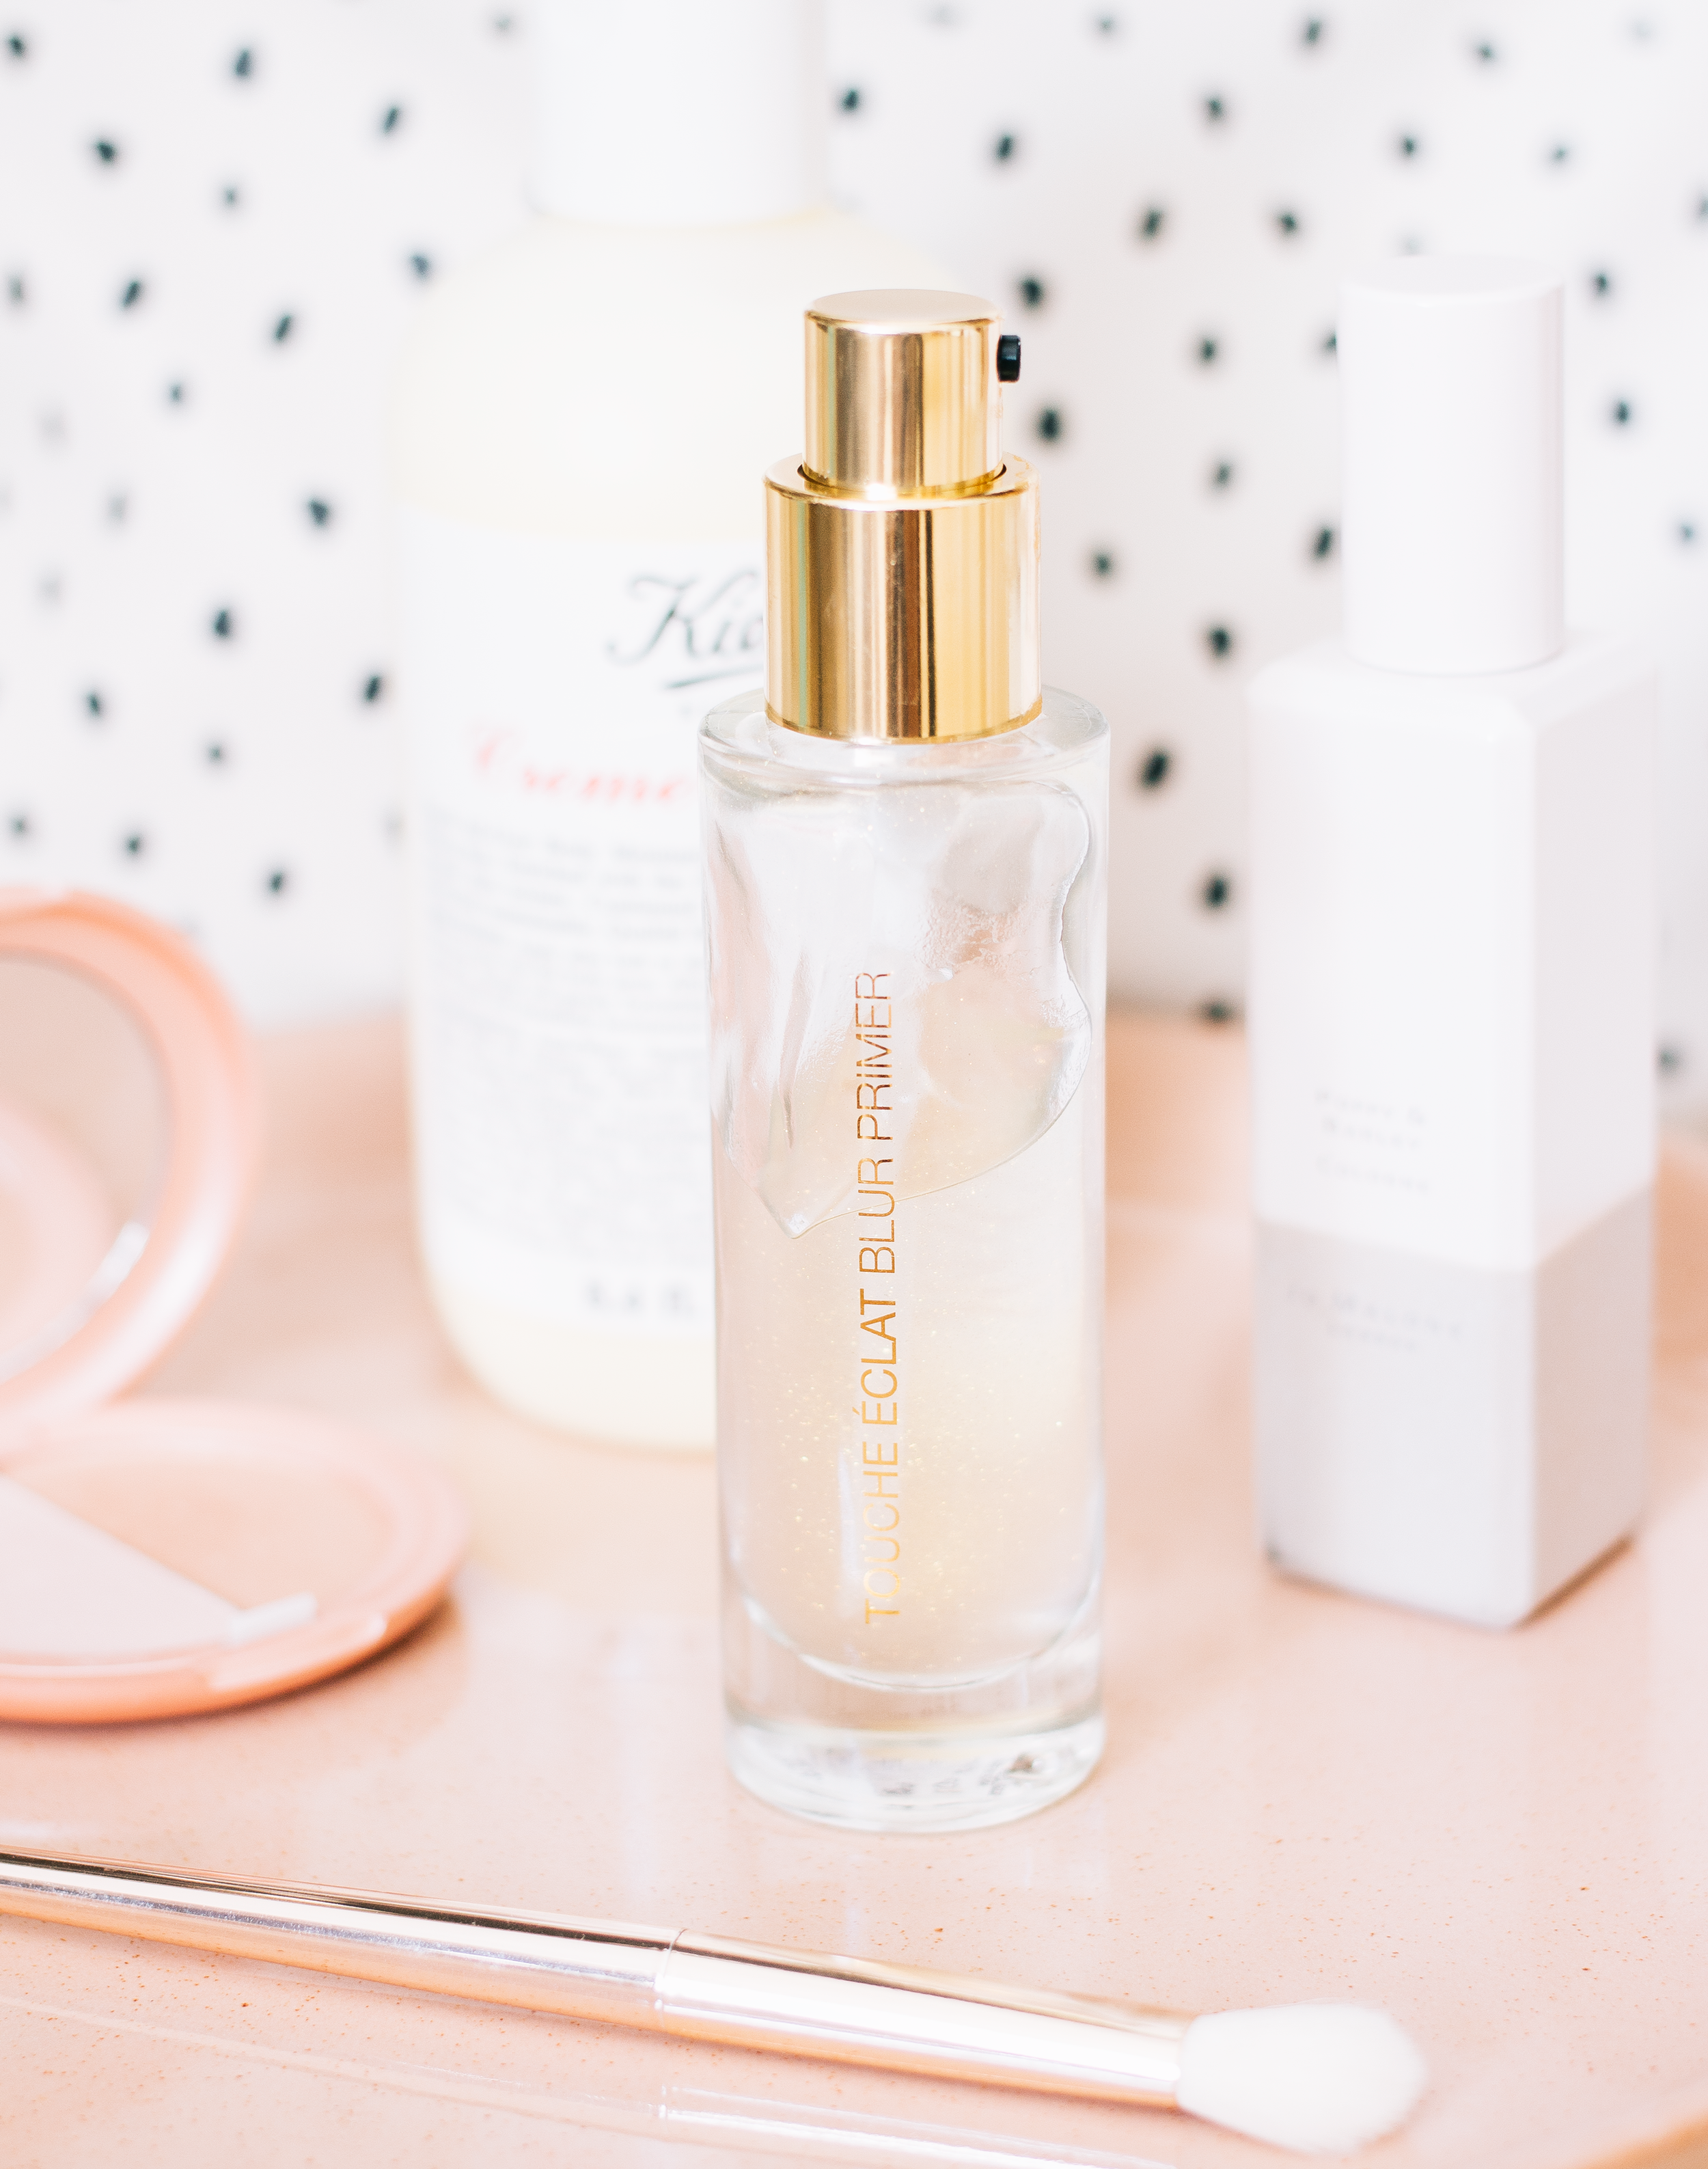 ysl touche eclat blur primer* - If you hate anything that feels slippery on the skin and is more than likely laden with silicones then you will not like this product from YSL. And granted, it does look like an absolute dream in the bottle with the flecks of gold running throughout the product and of course, the golden packaging but seriously steer clear if you don't like those two things. This is the first primer I've liked that is this consistency, usually, they turn my skin into a greasy mess but this one is fine and really helps to perfect the complexion. It glides over any imperfections and creates a hydrated and even canvas for anything you want to apply over the top. Although this does feel silicone-y on the skin I don't find it leads to blocked pores or anything like that. And do not fear, those pretty gold flecks do not transfer on the skin in the slightest, no glittery face over here thank you. The biggest downside is that I do find that I've got my way through it quite quickly even though you only need a small amount.